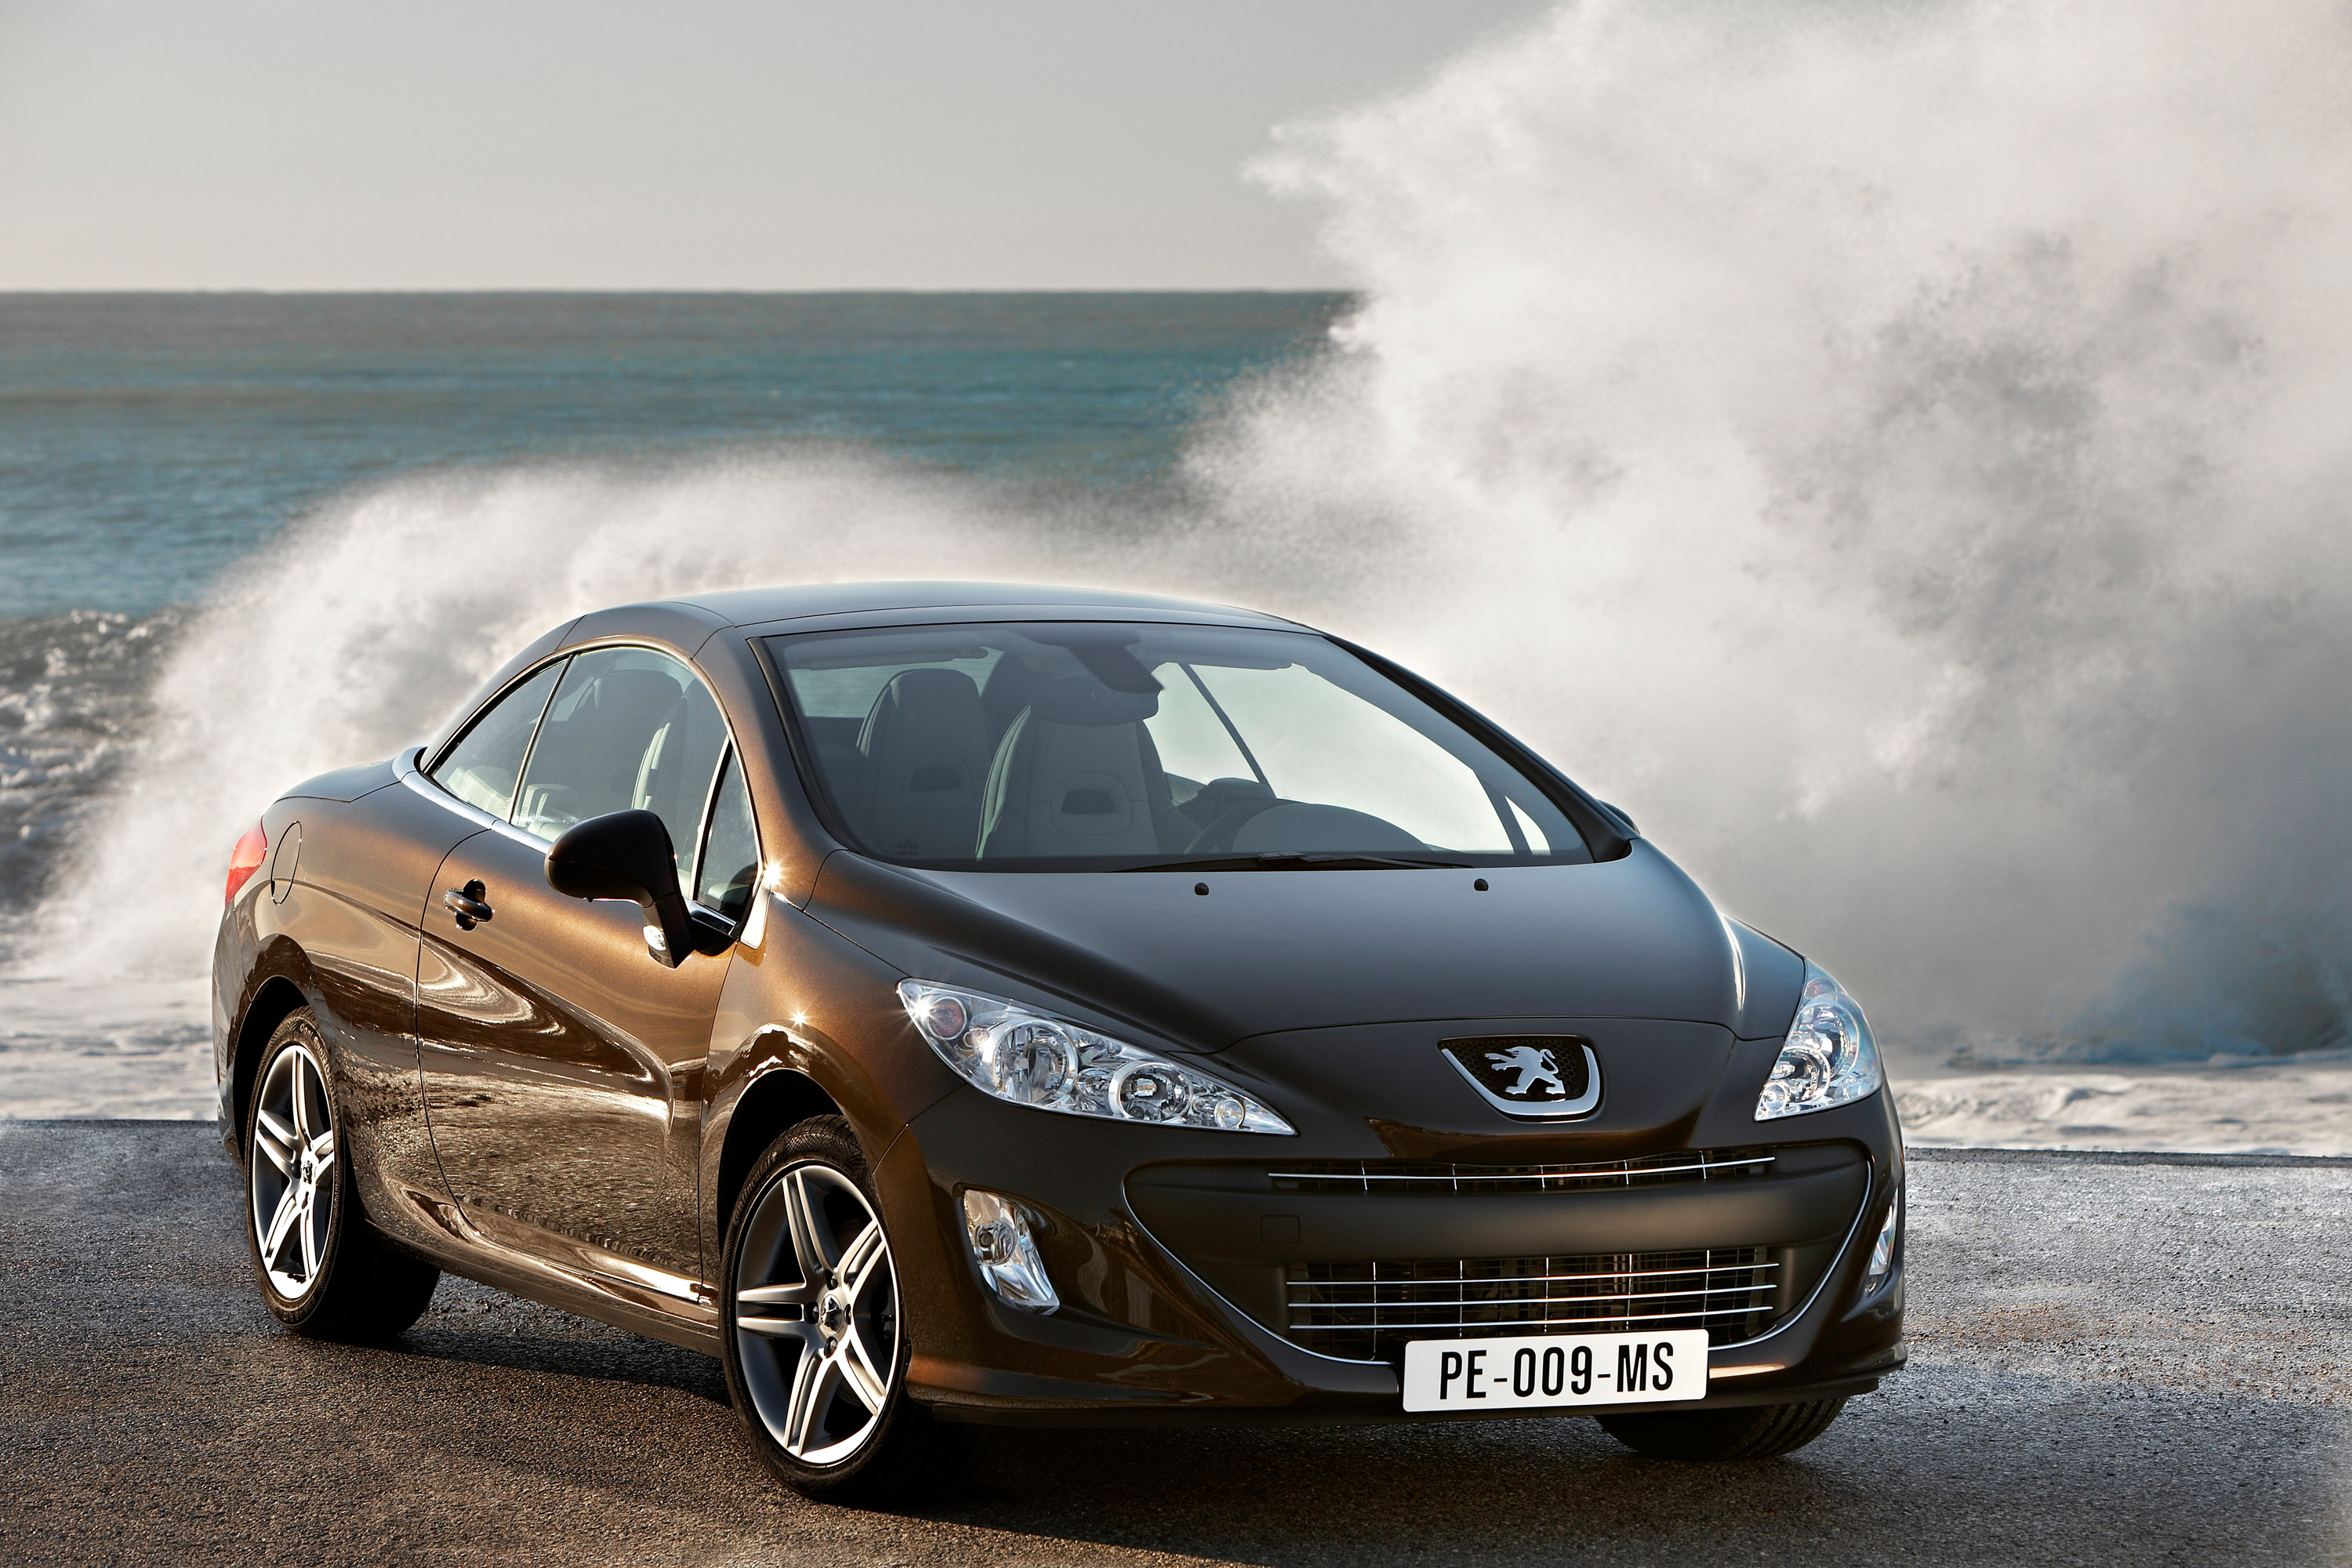 peugeot 308 cc prices and trim specifications announced. Black Bedroom Furniture Sets. Home Design Ideas